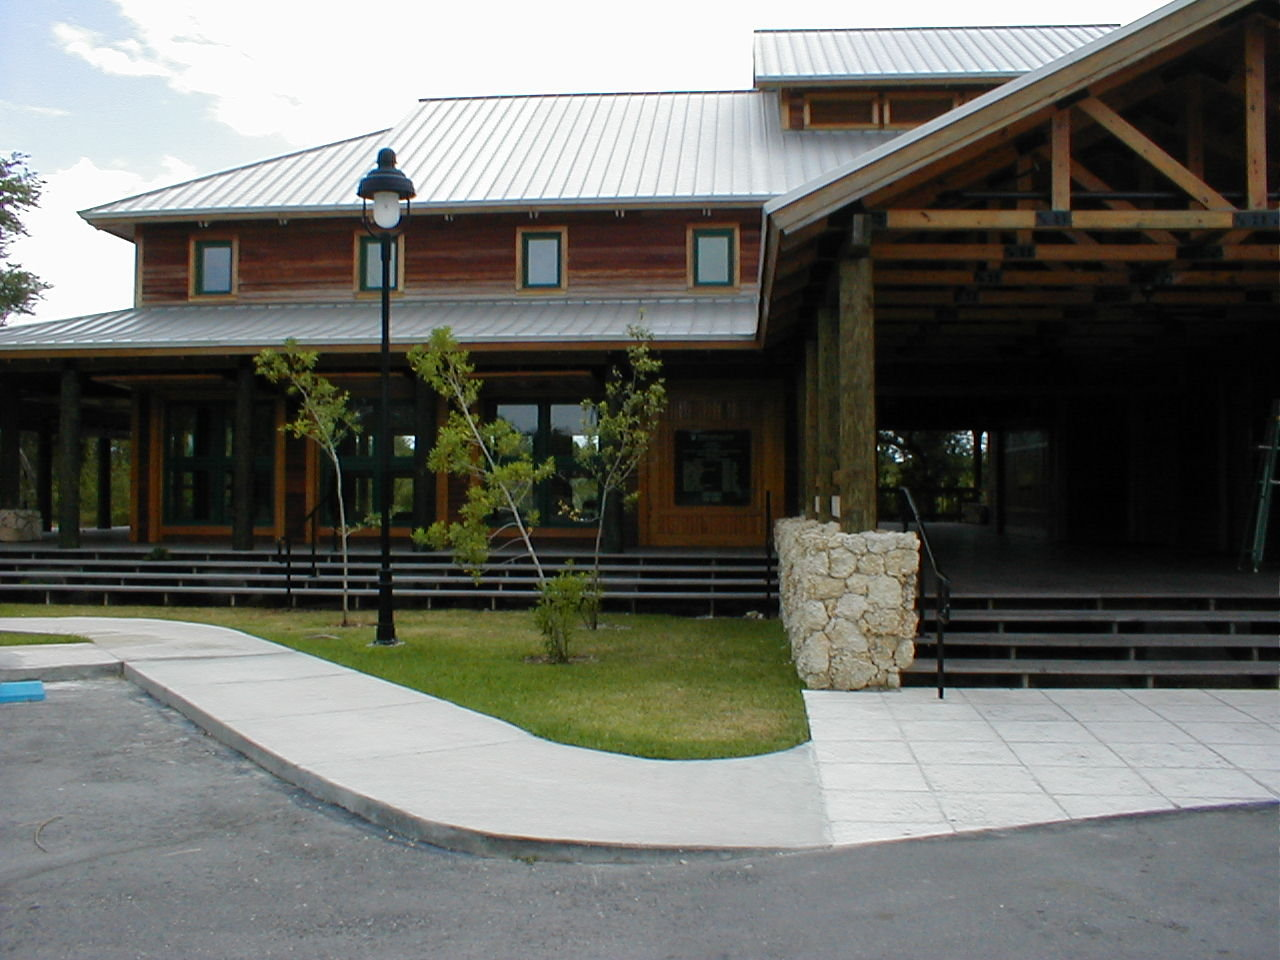 Frontal view of the Visitor Center from the parking lot